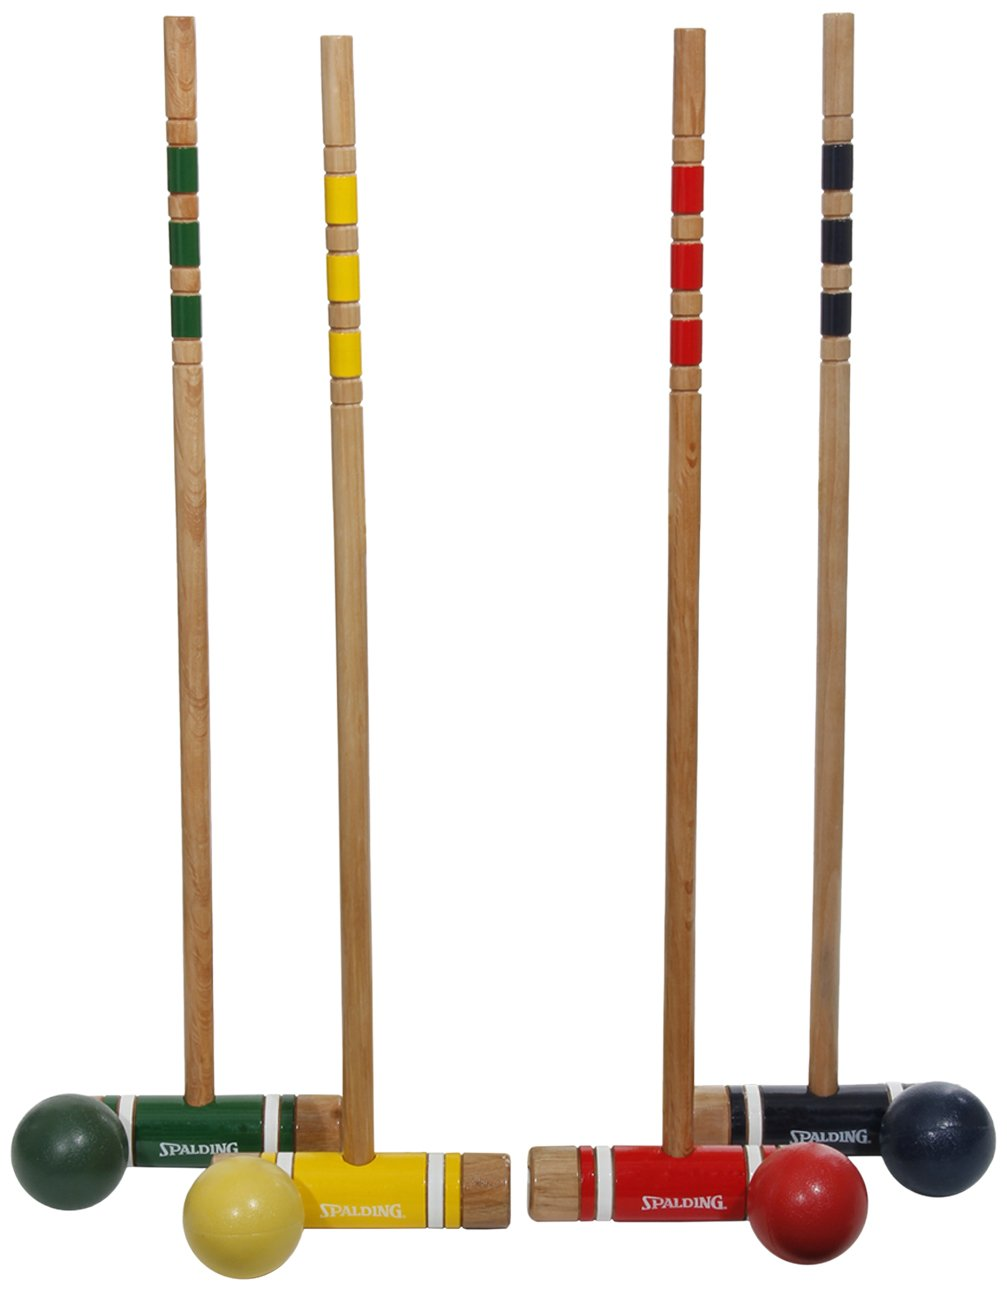 Spalding 4-Player Recreational Series Croquet Set